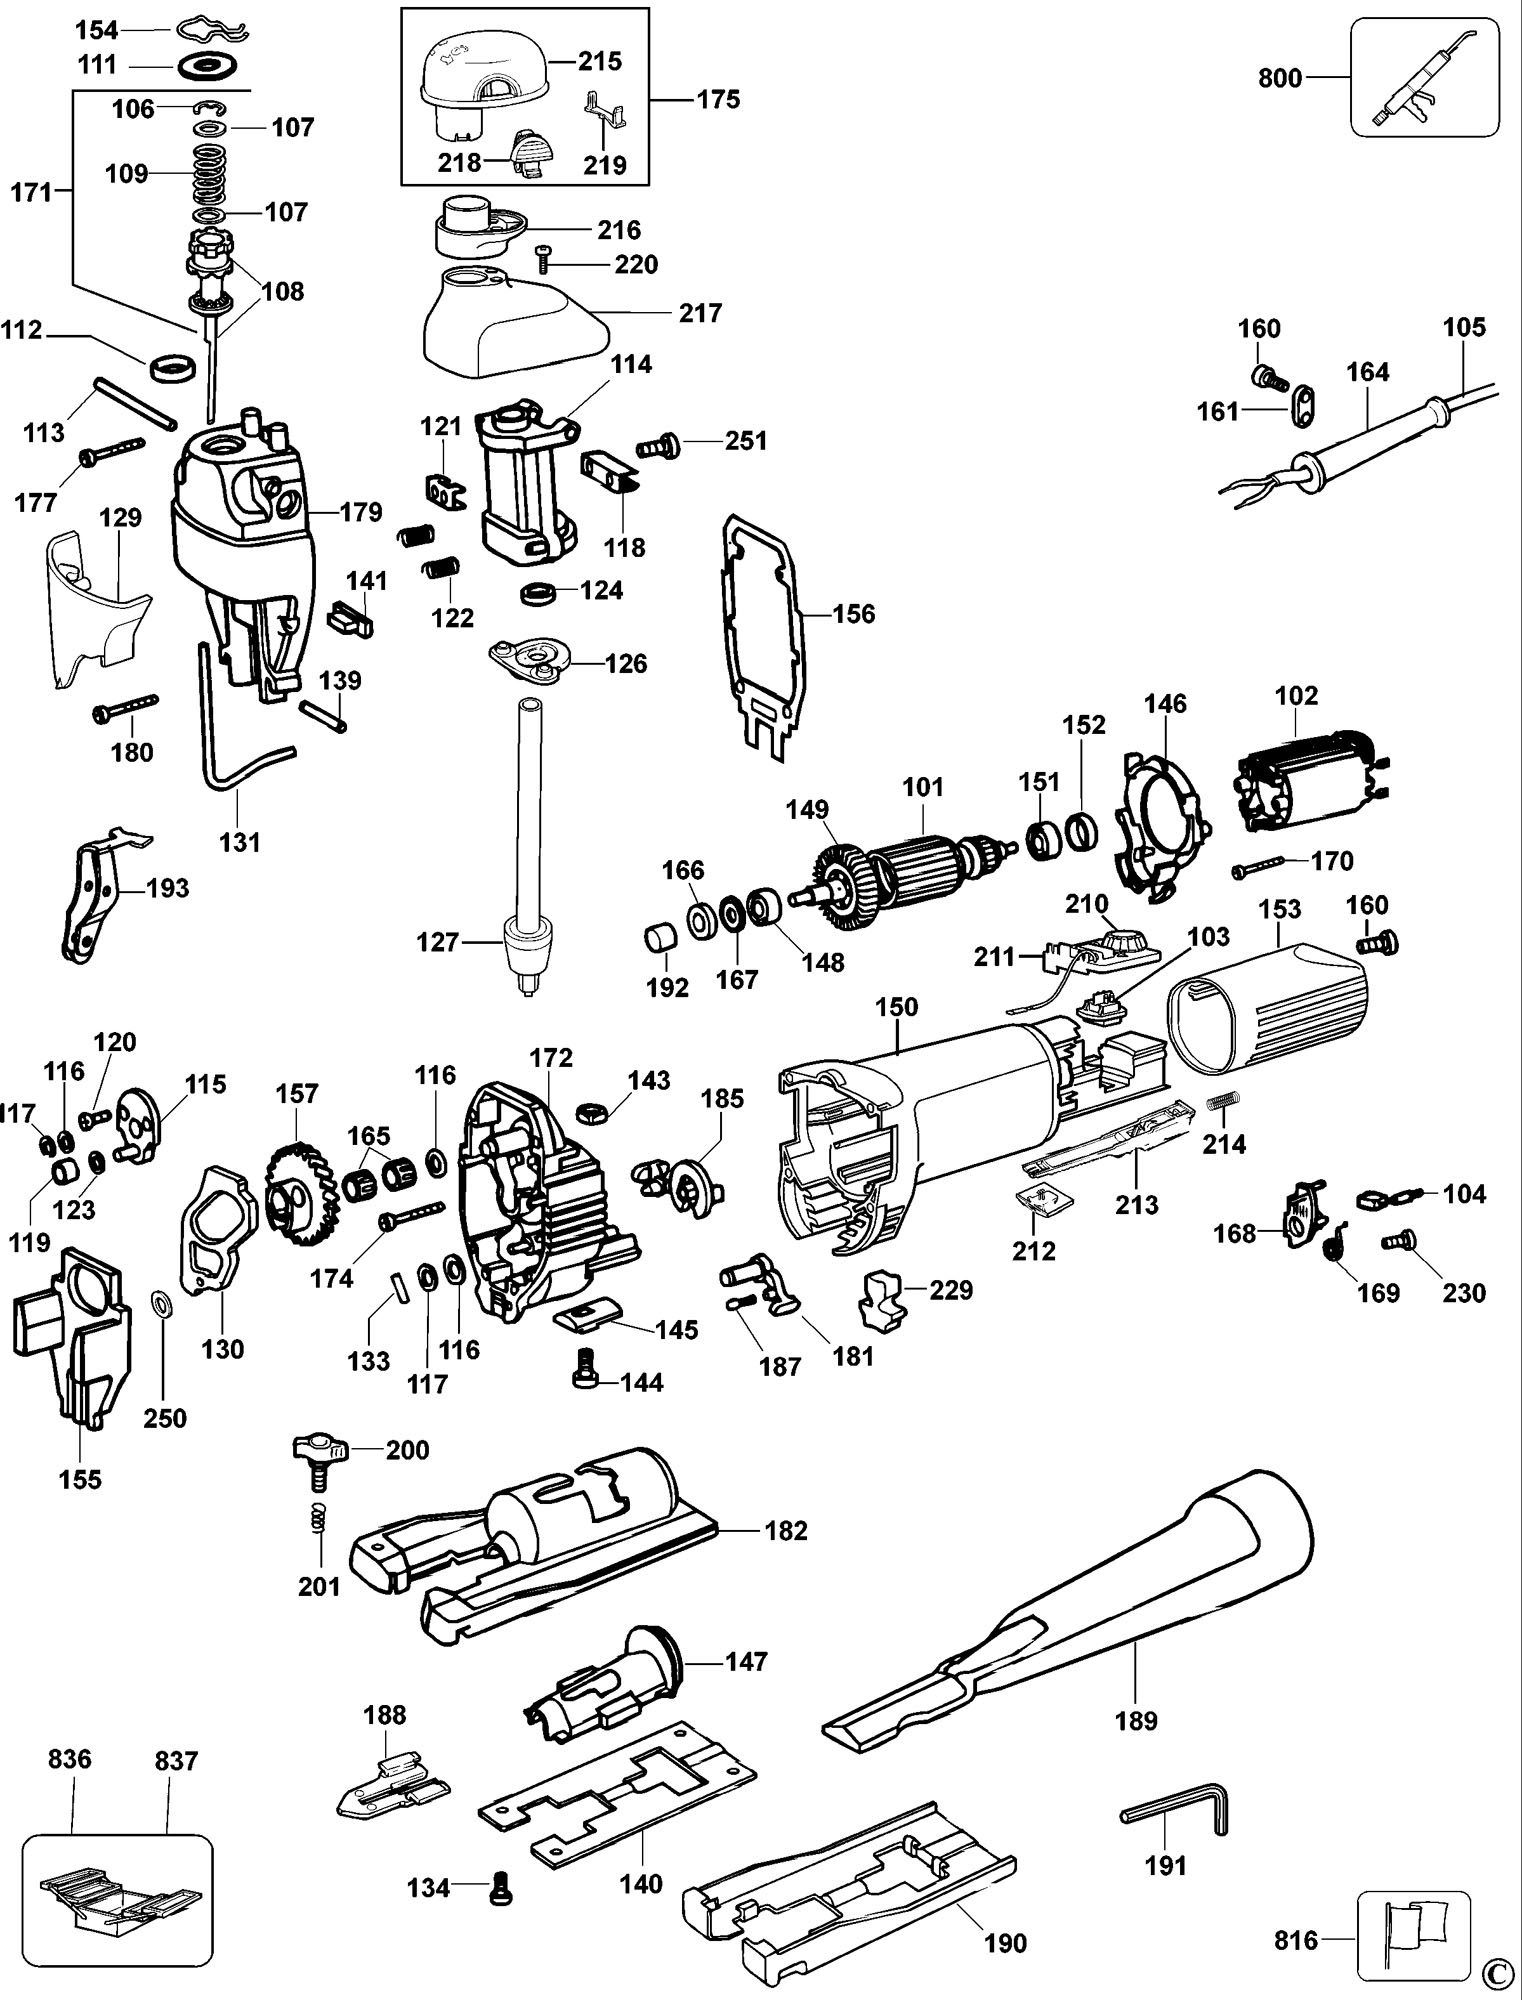 Zongshen 250cc Wiring Diagram Apktodownload